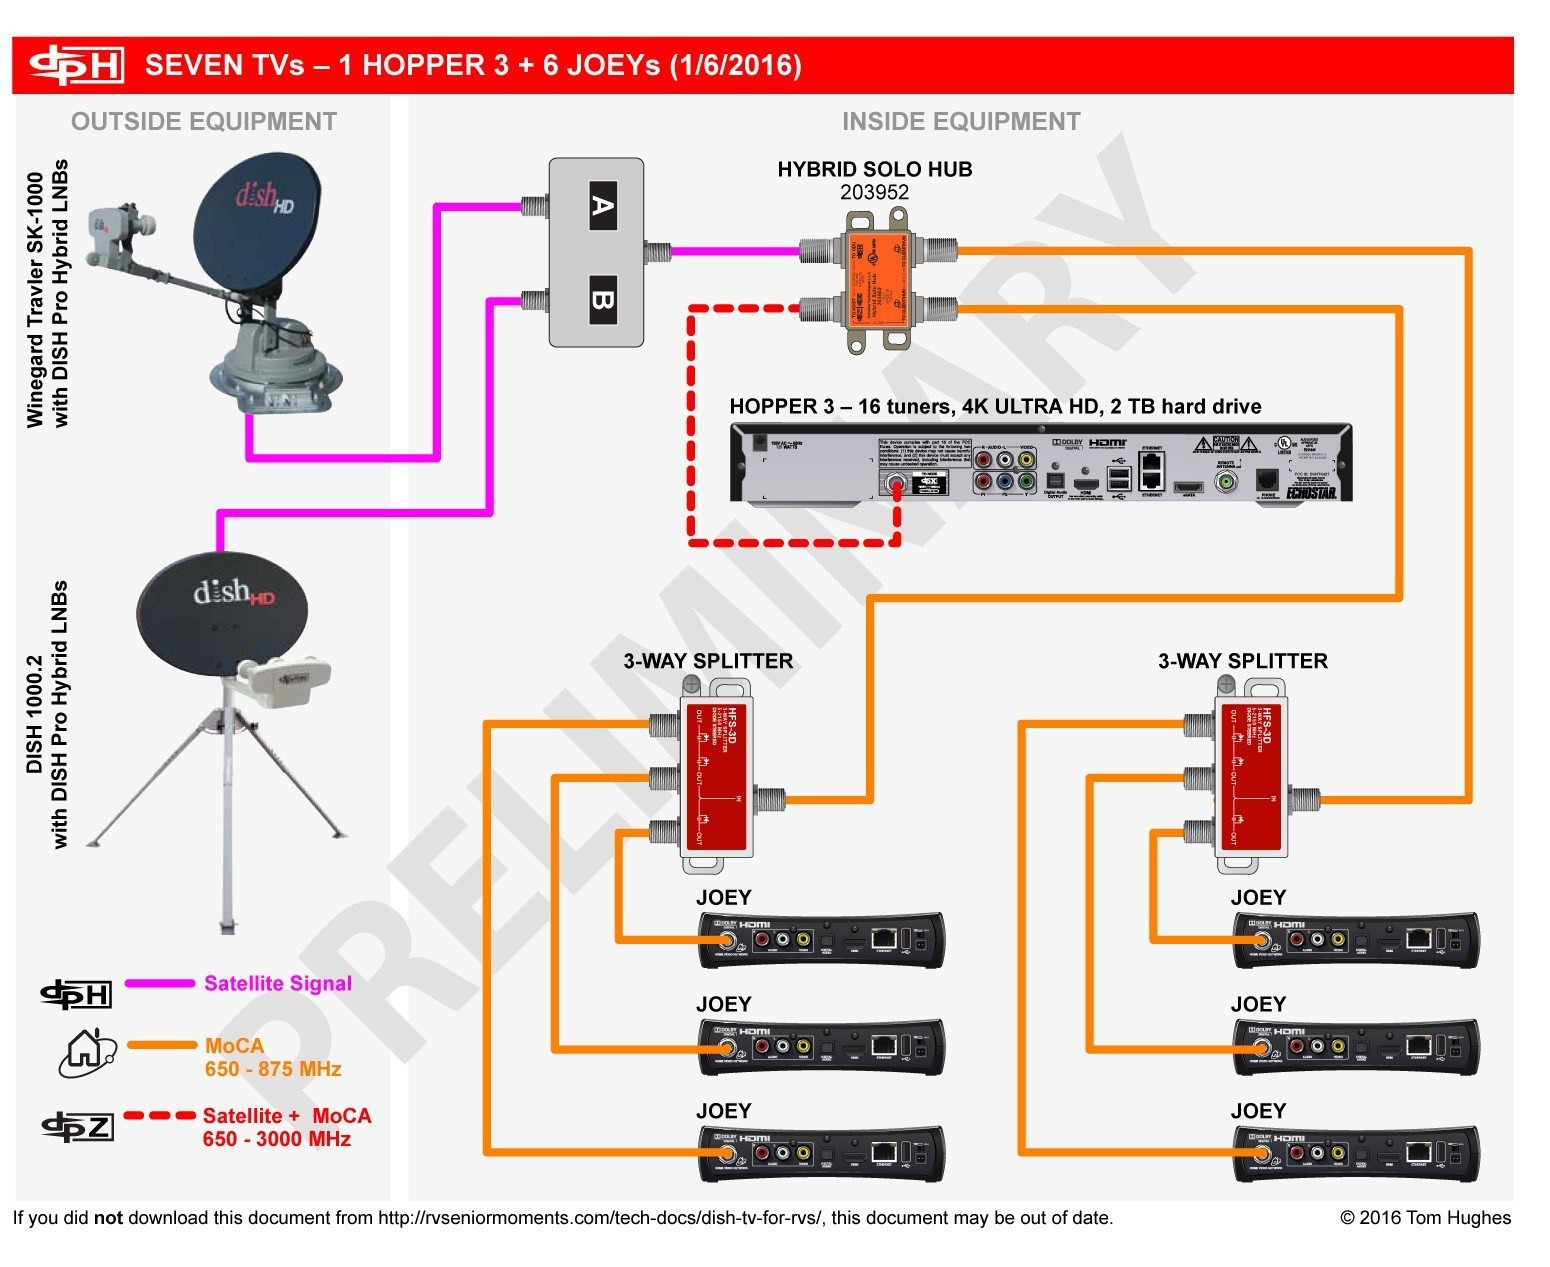 wiring diagram for dish network satellite Collection-Rv Cable and Satellite Wiring Diagram Luxury Rca Tv Wiring Diagram Rca Tv Wiring Diagrams Wiring 12-i